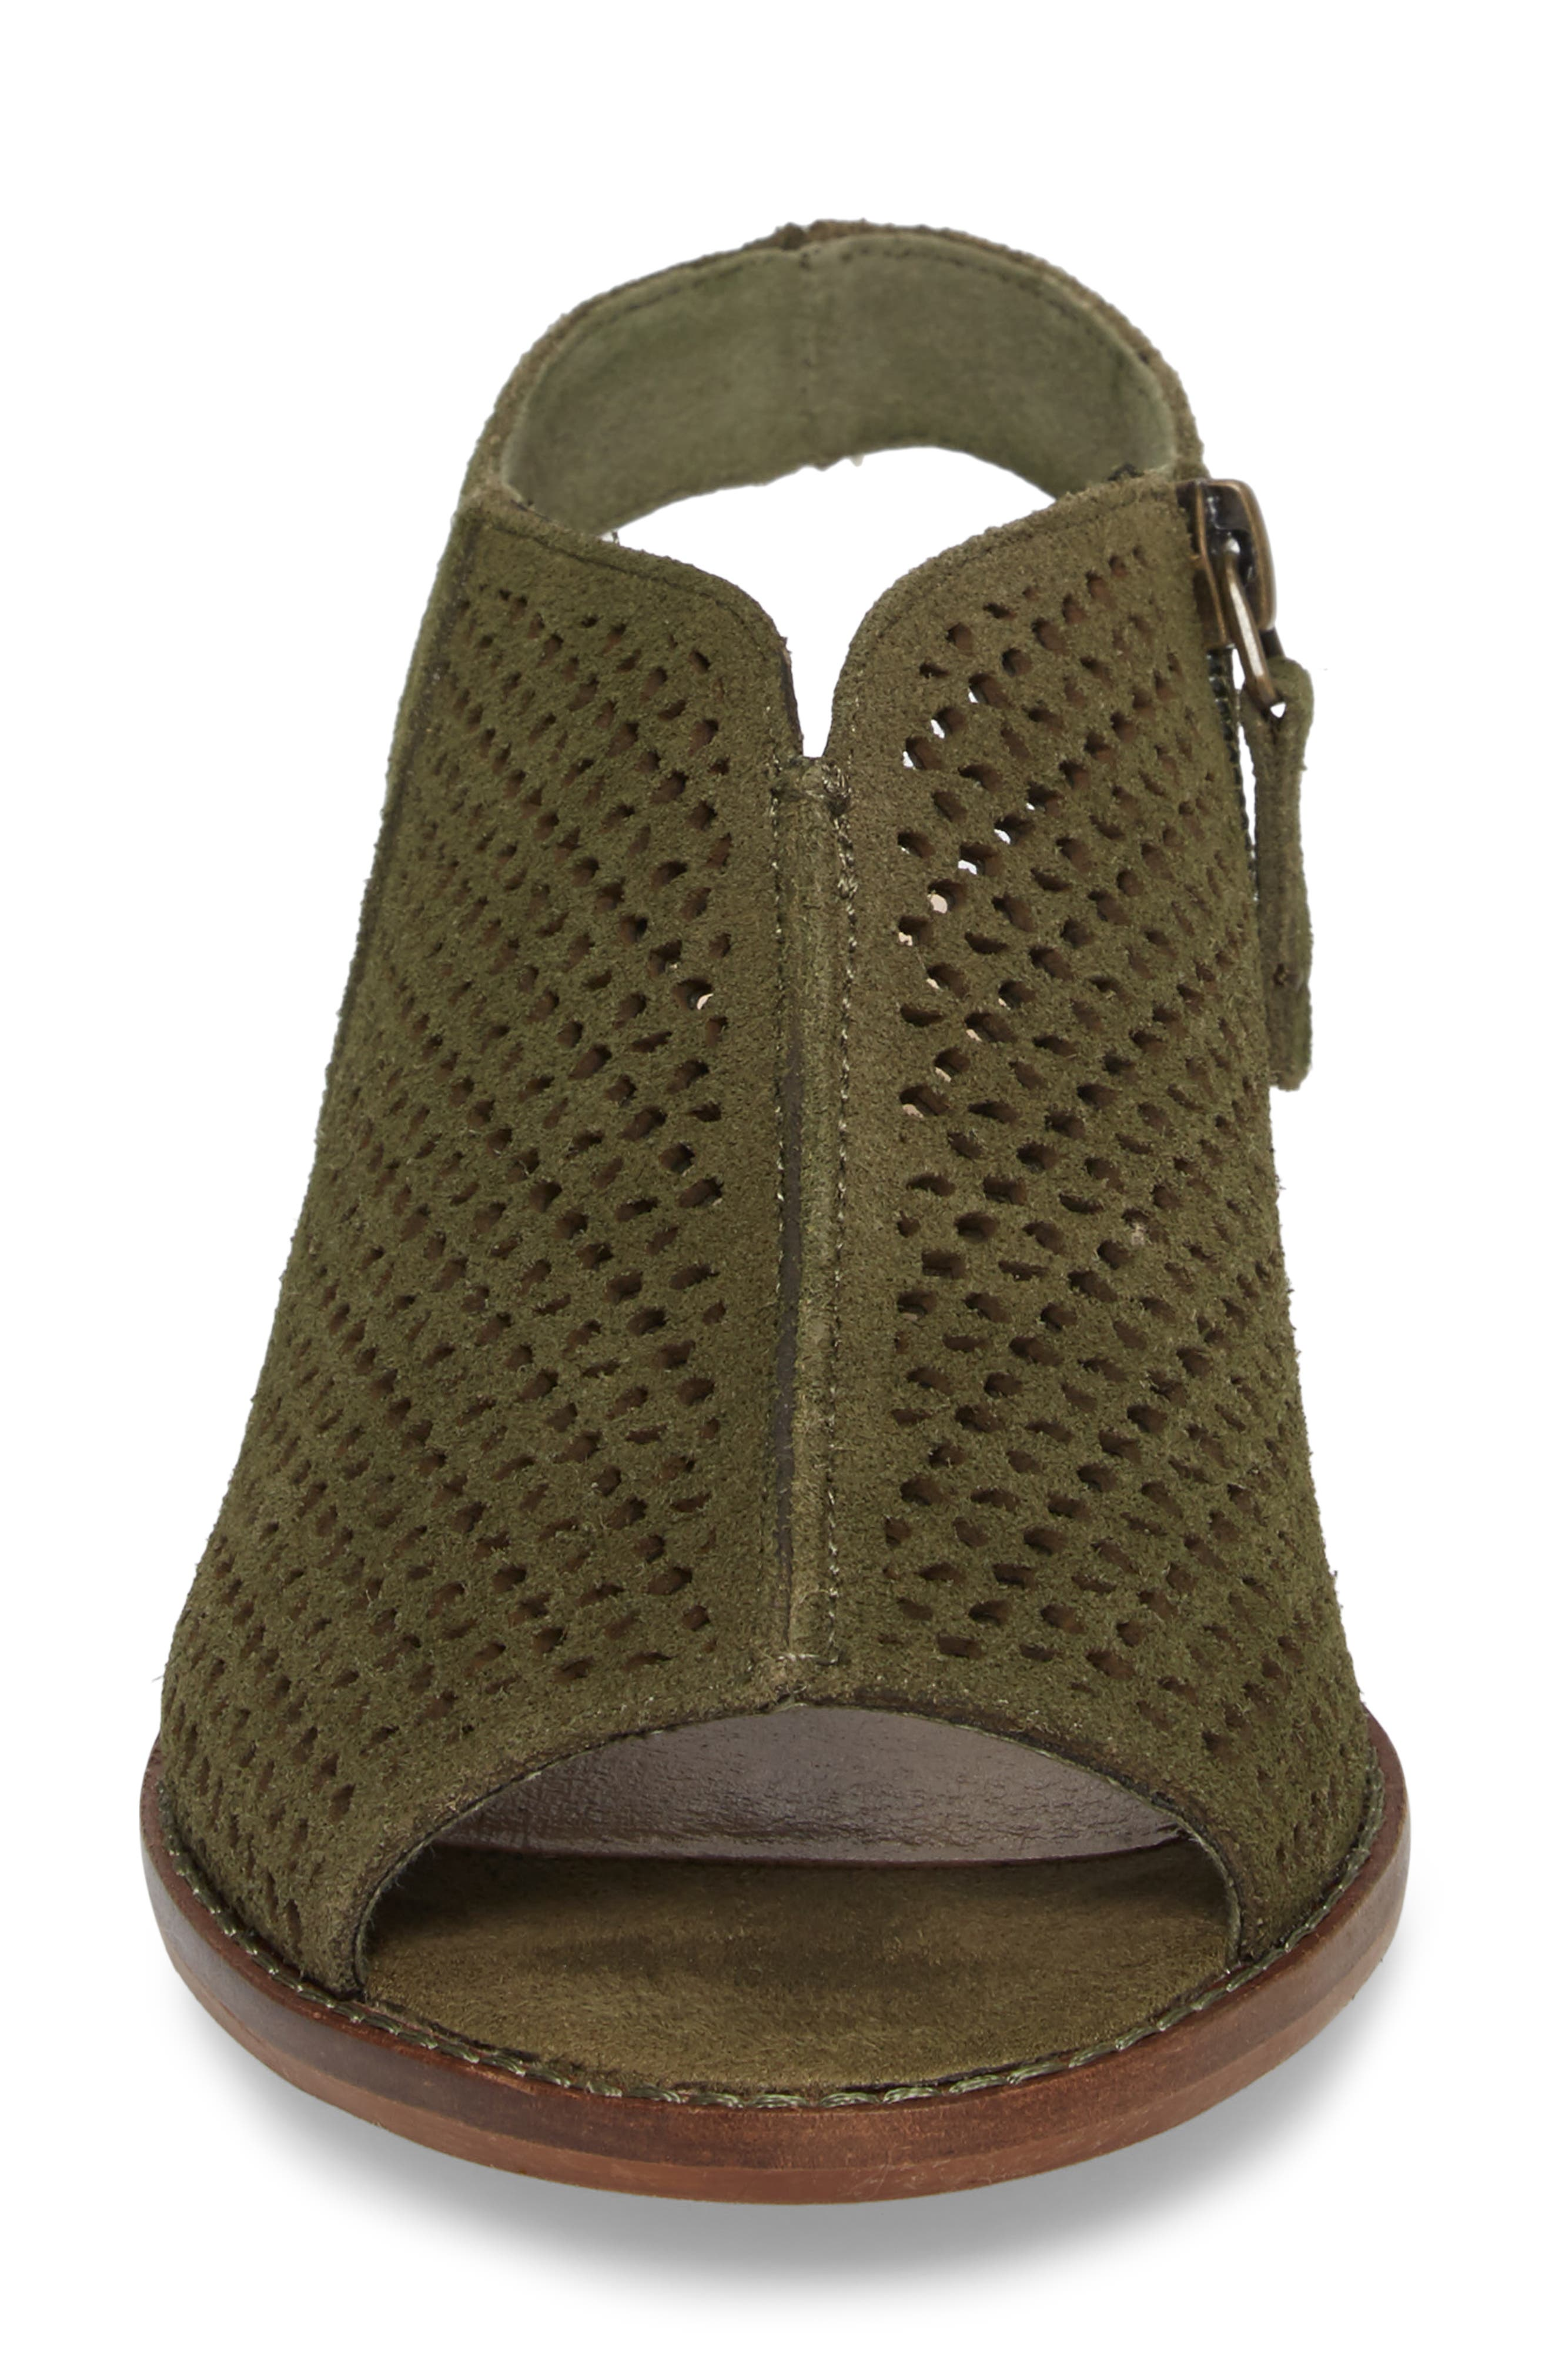 Seneca Perforated Sandal,                             Alternate thumbnail 4, color,                             Olive